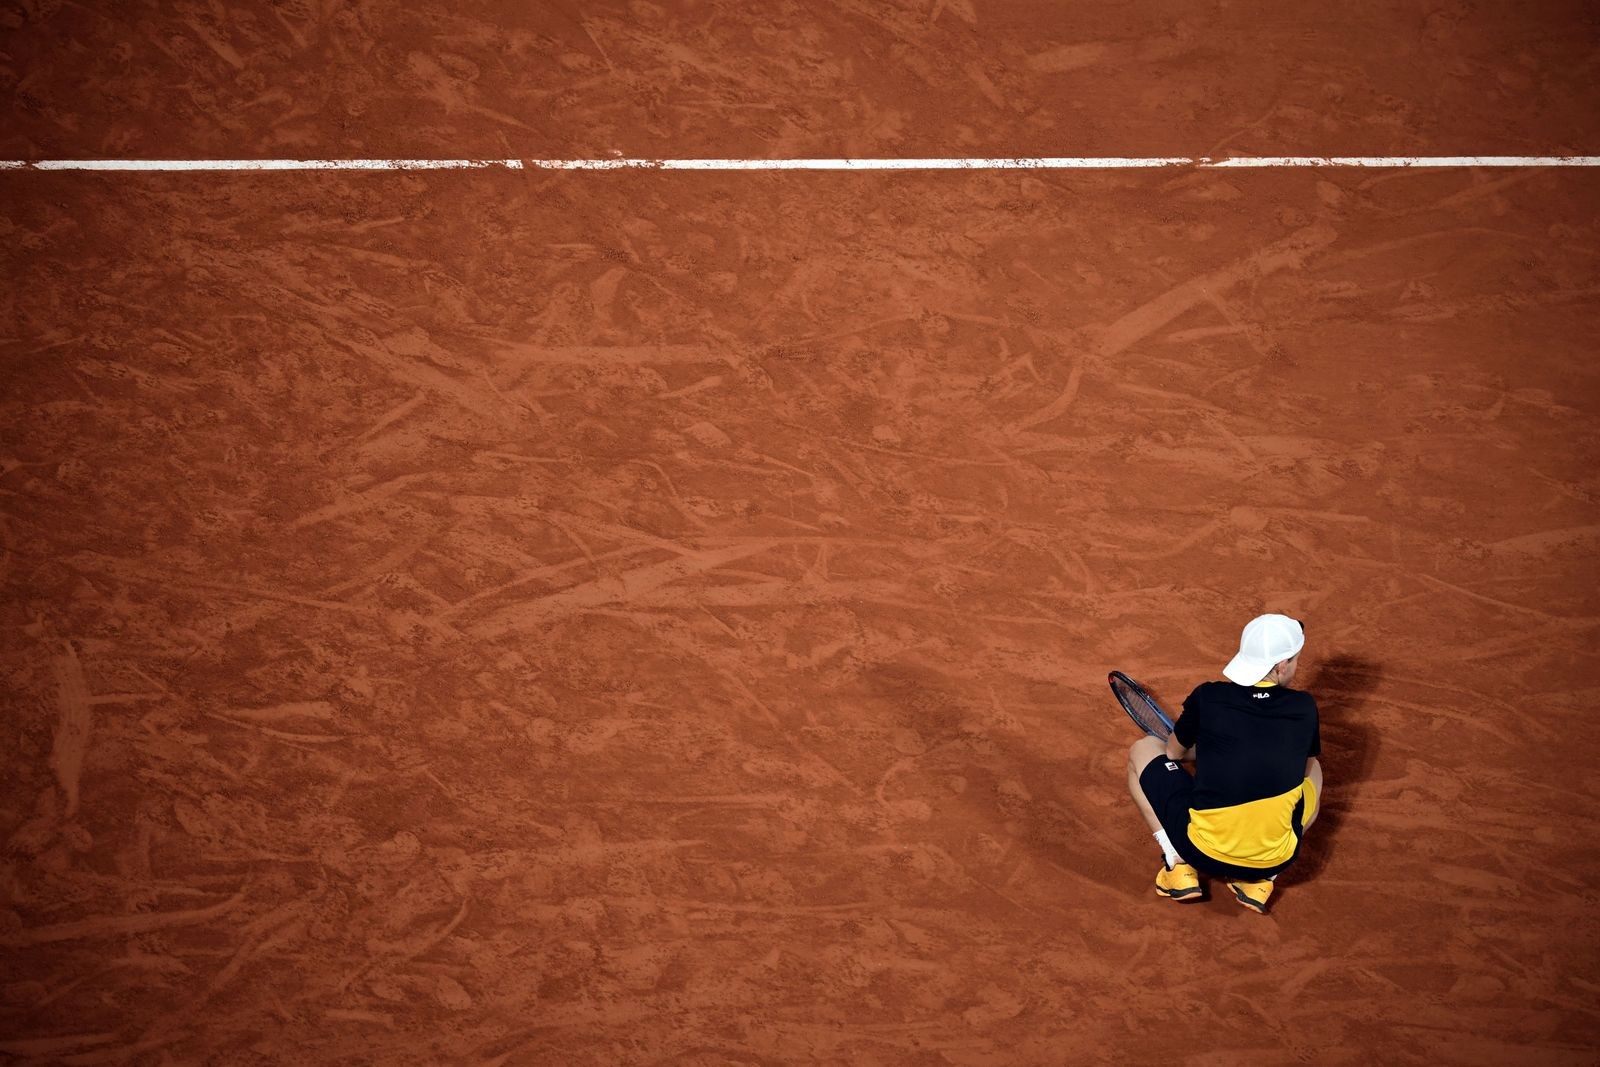 French Open tennis tournament at Roland Garros, Paris, France - 06 Oct 2020